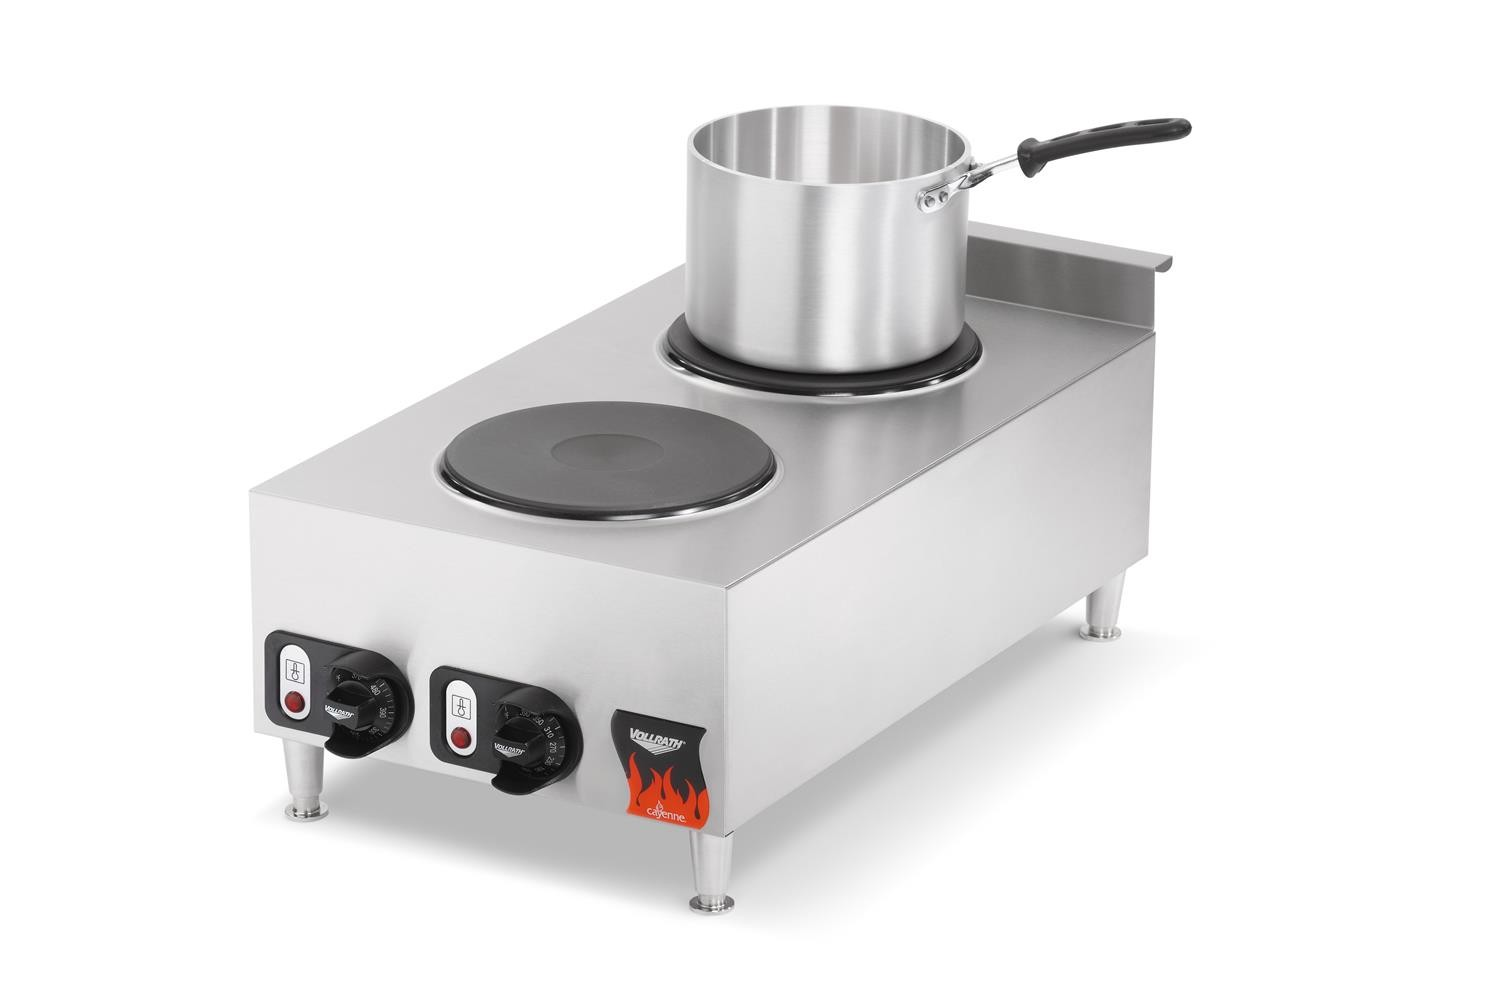 Vollrath 40739 Electric Countertop Hot Plate